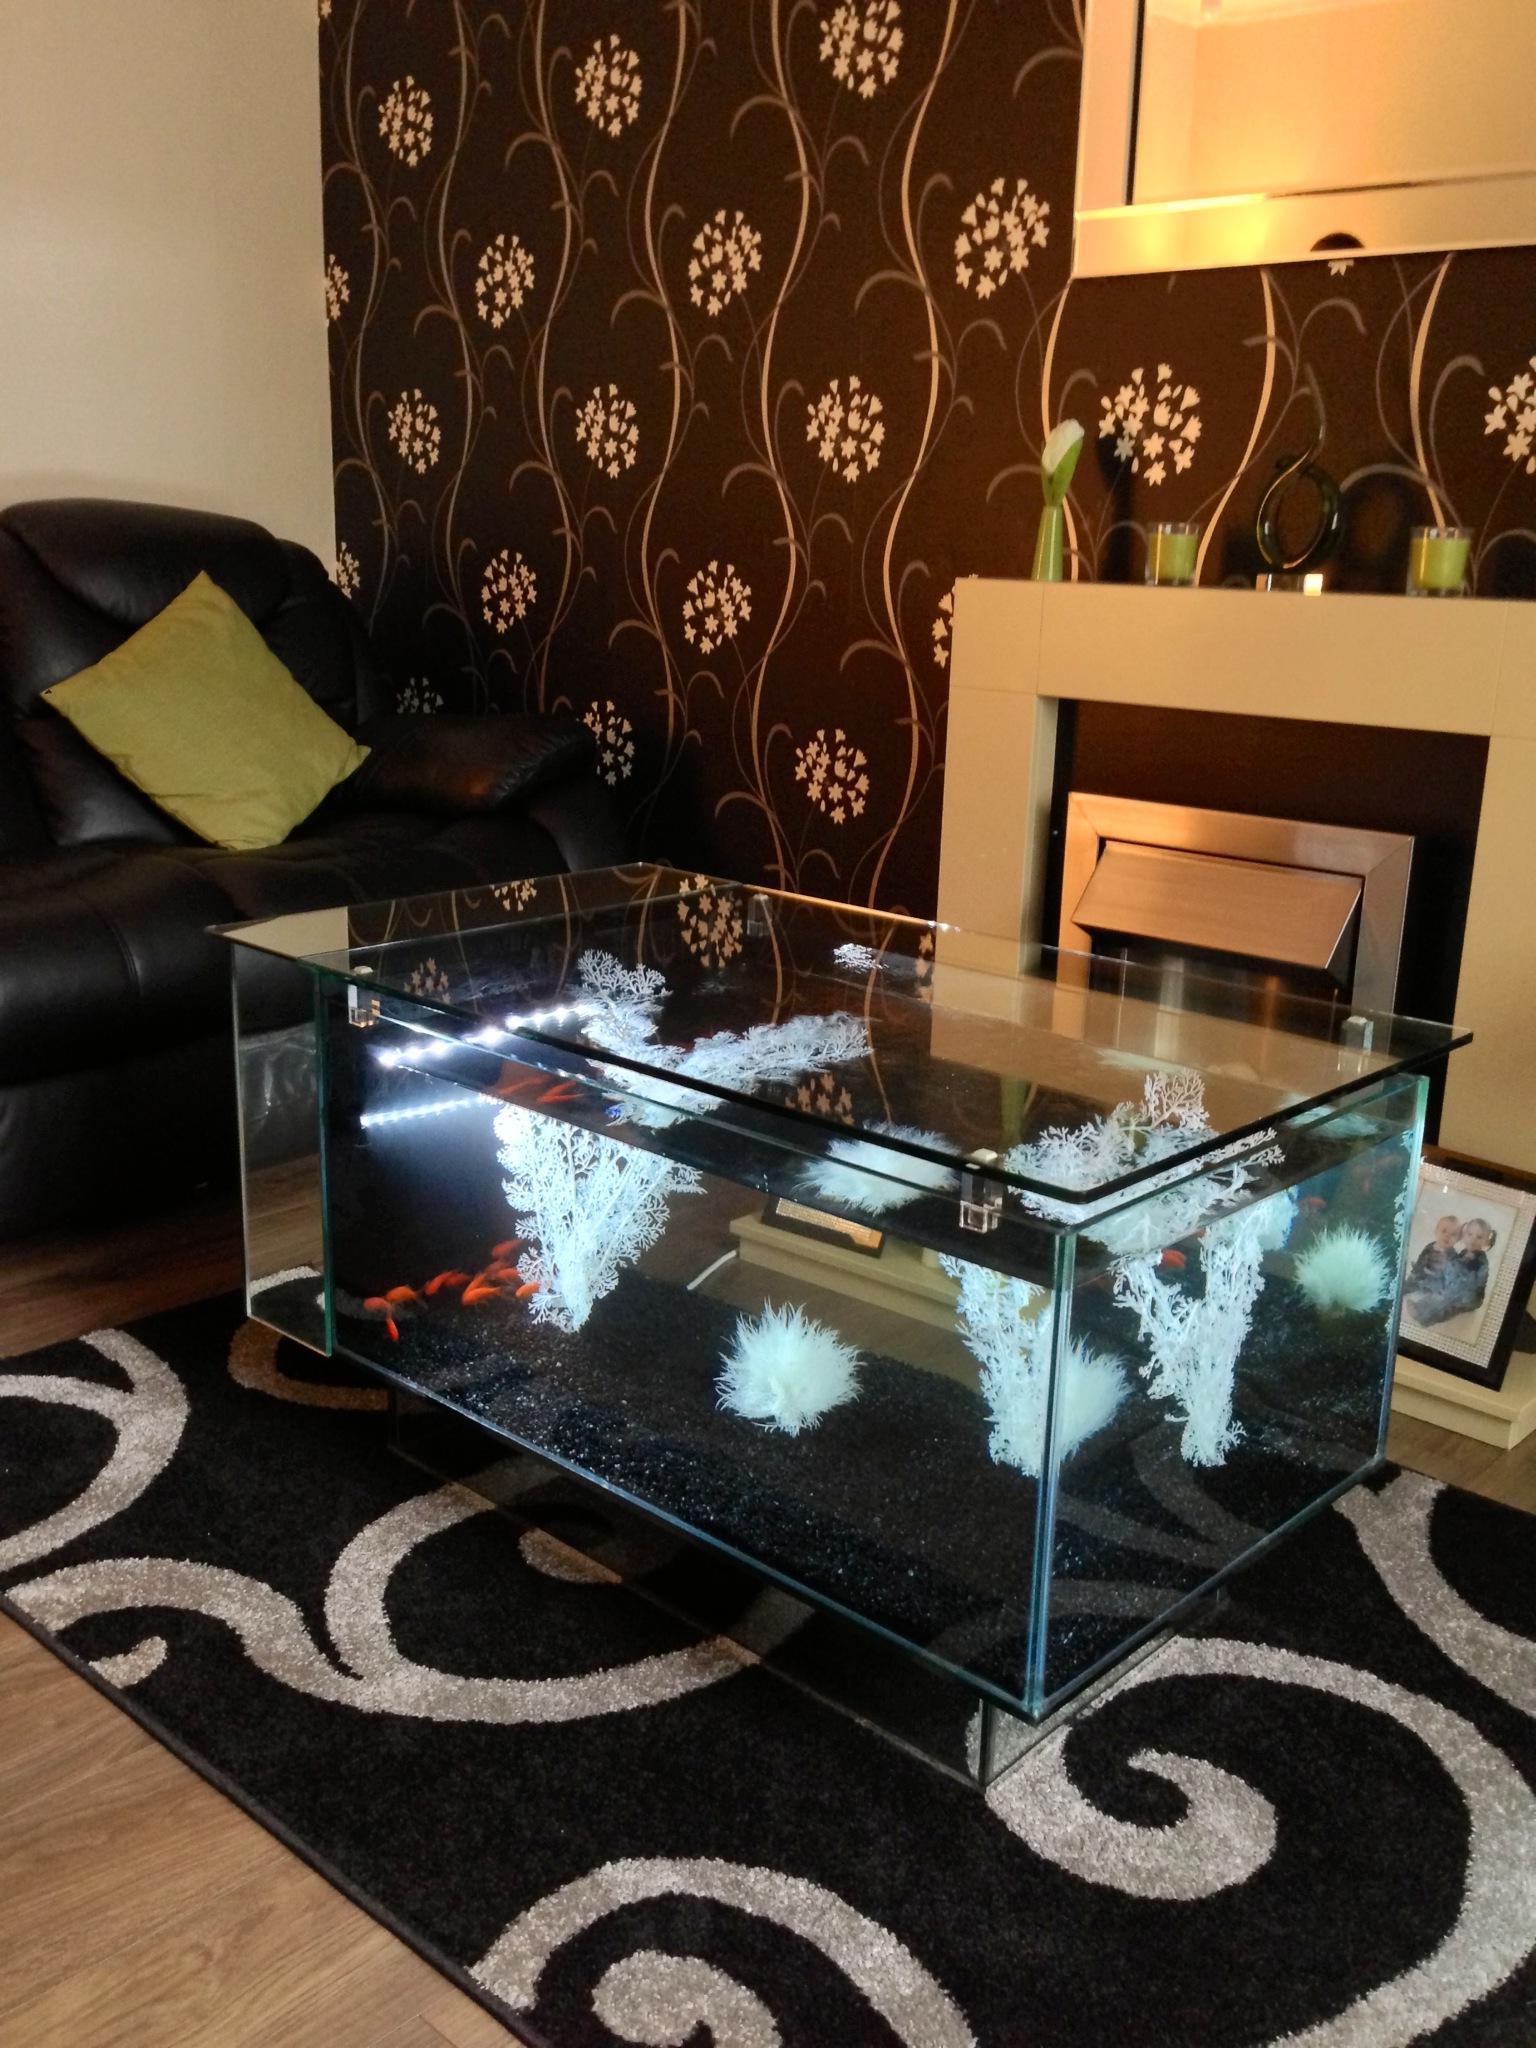 Aquarium Coffee Table For Sale